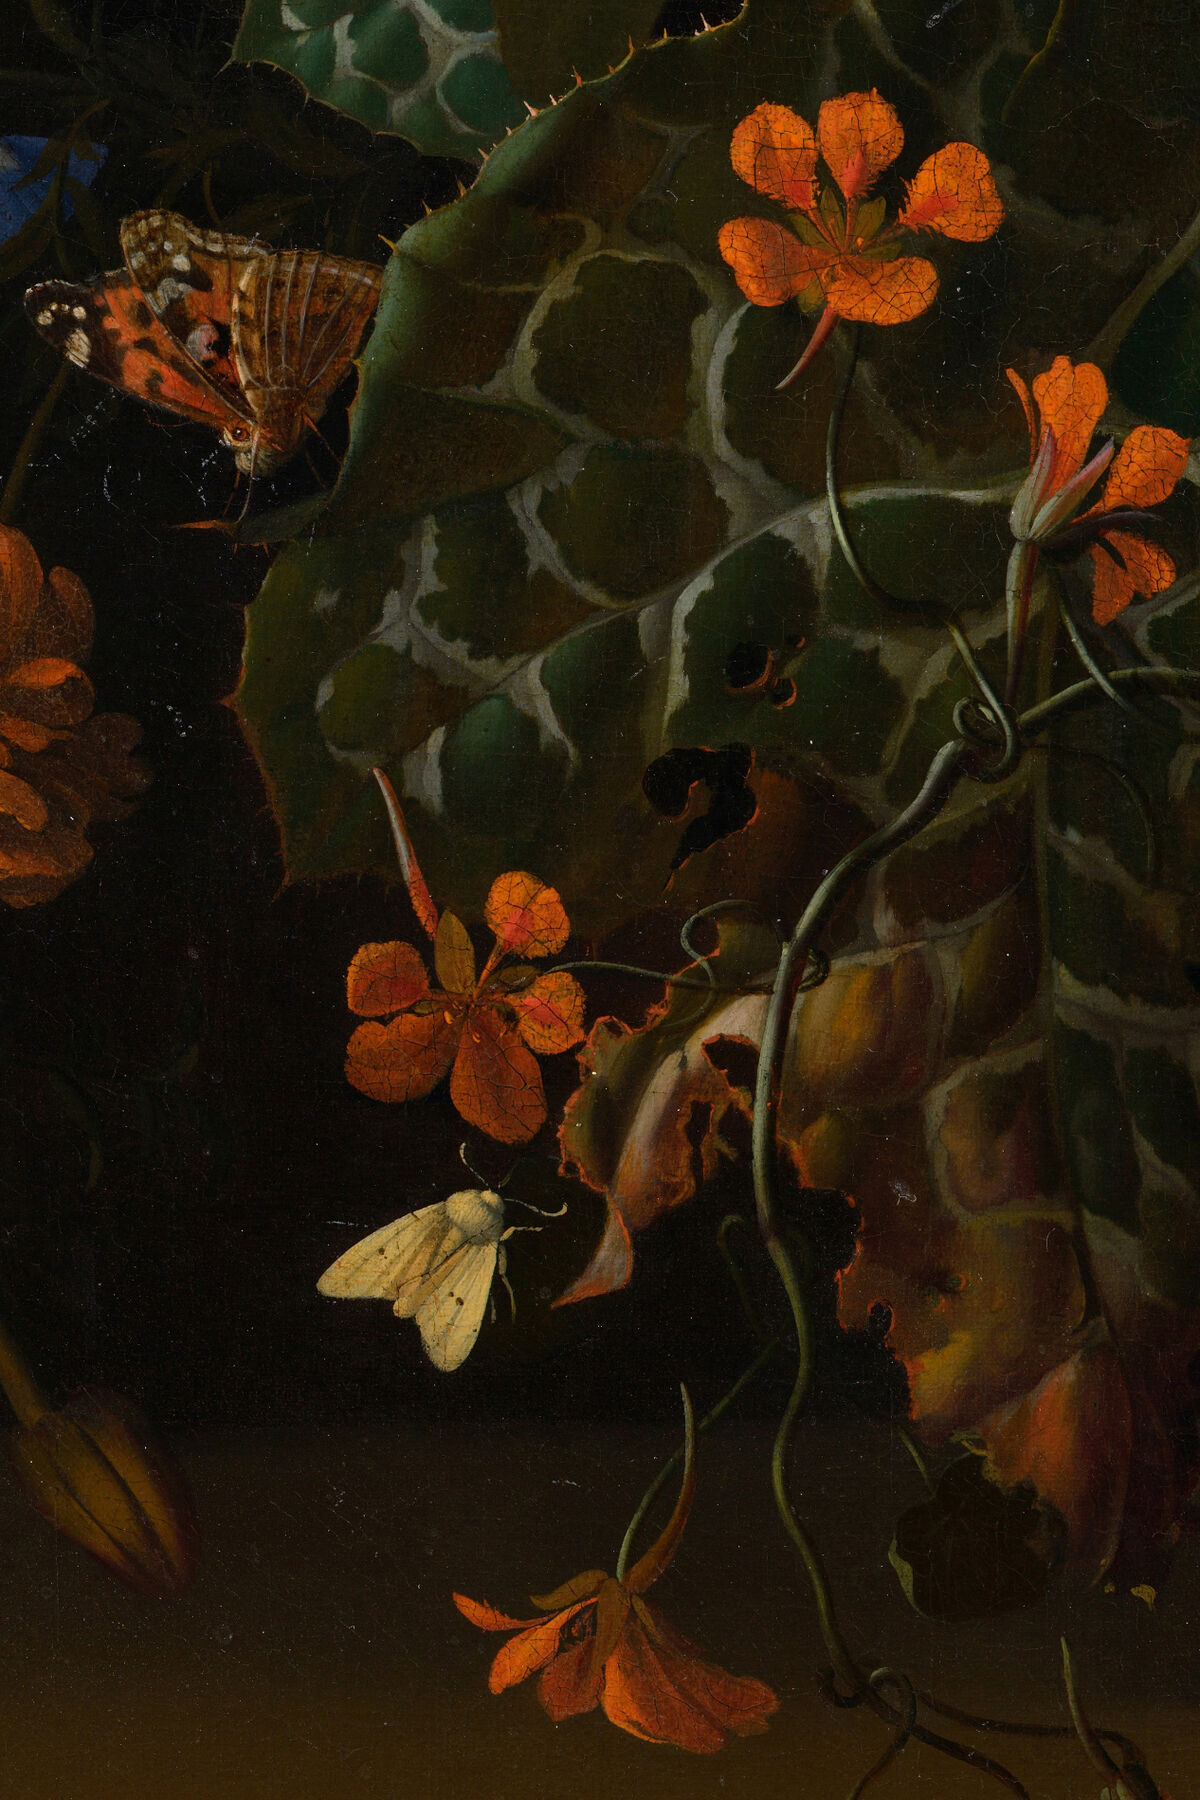 Rachel Ruysch, detail of Roses, Convolvulus, Poppies, and Other Flowers in an Urn on a Stone Ledge, 1680s. Image via Wikimedia Commons.